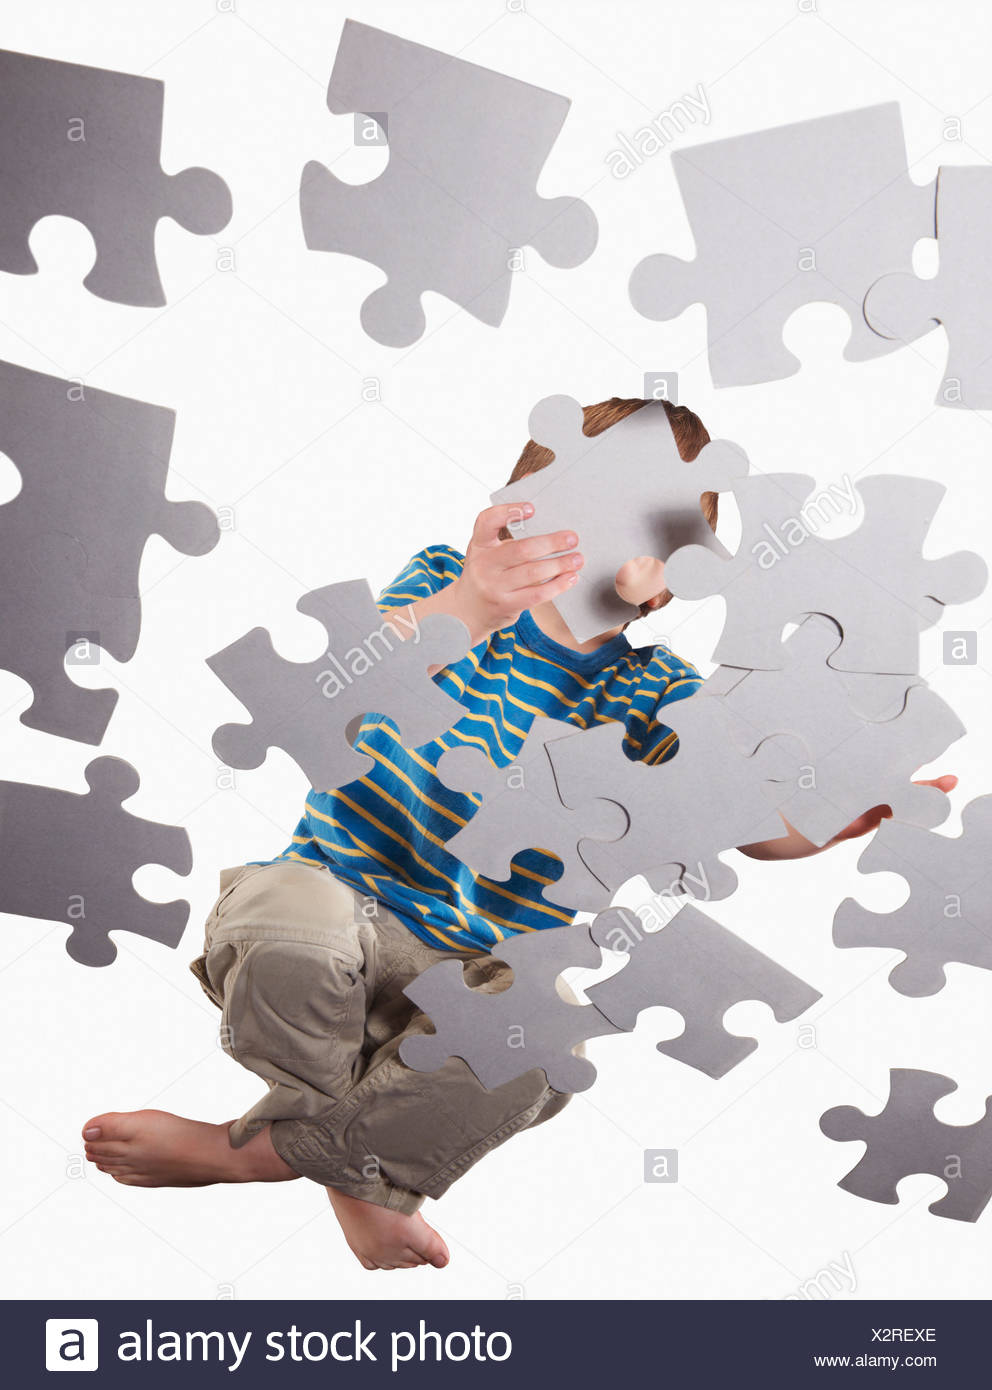 Boy playing with oversize jigsaw puzzle - Stock Image